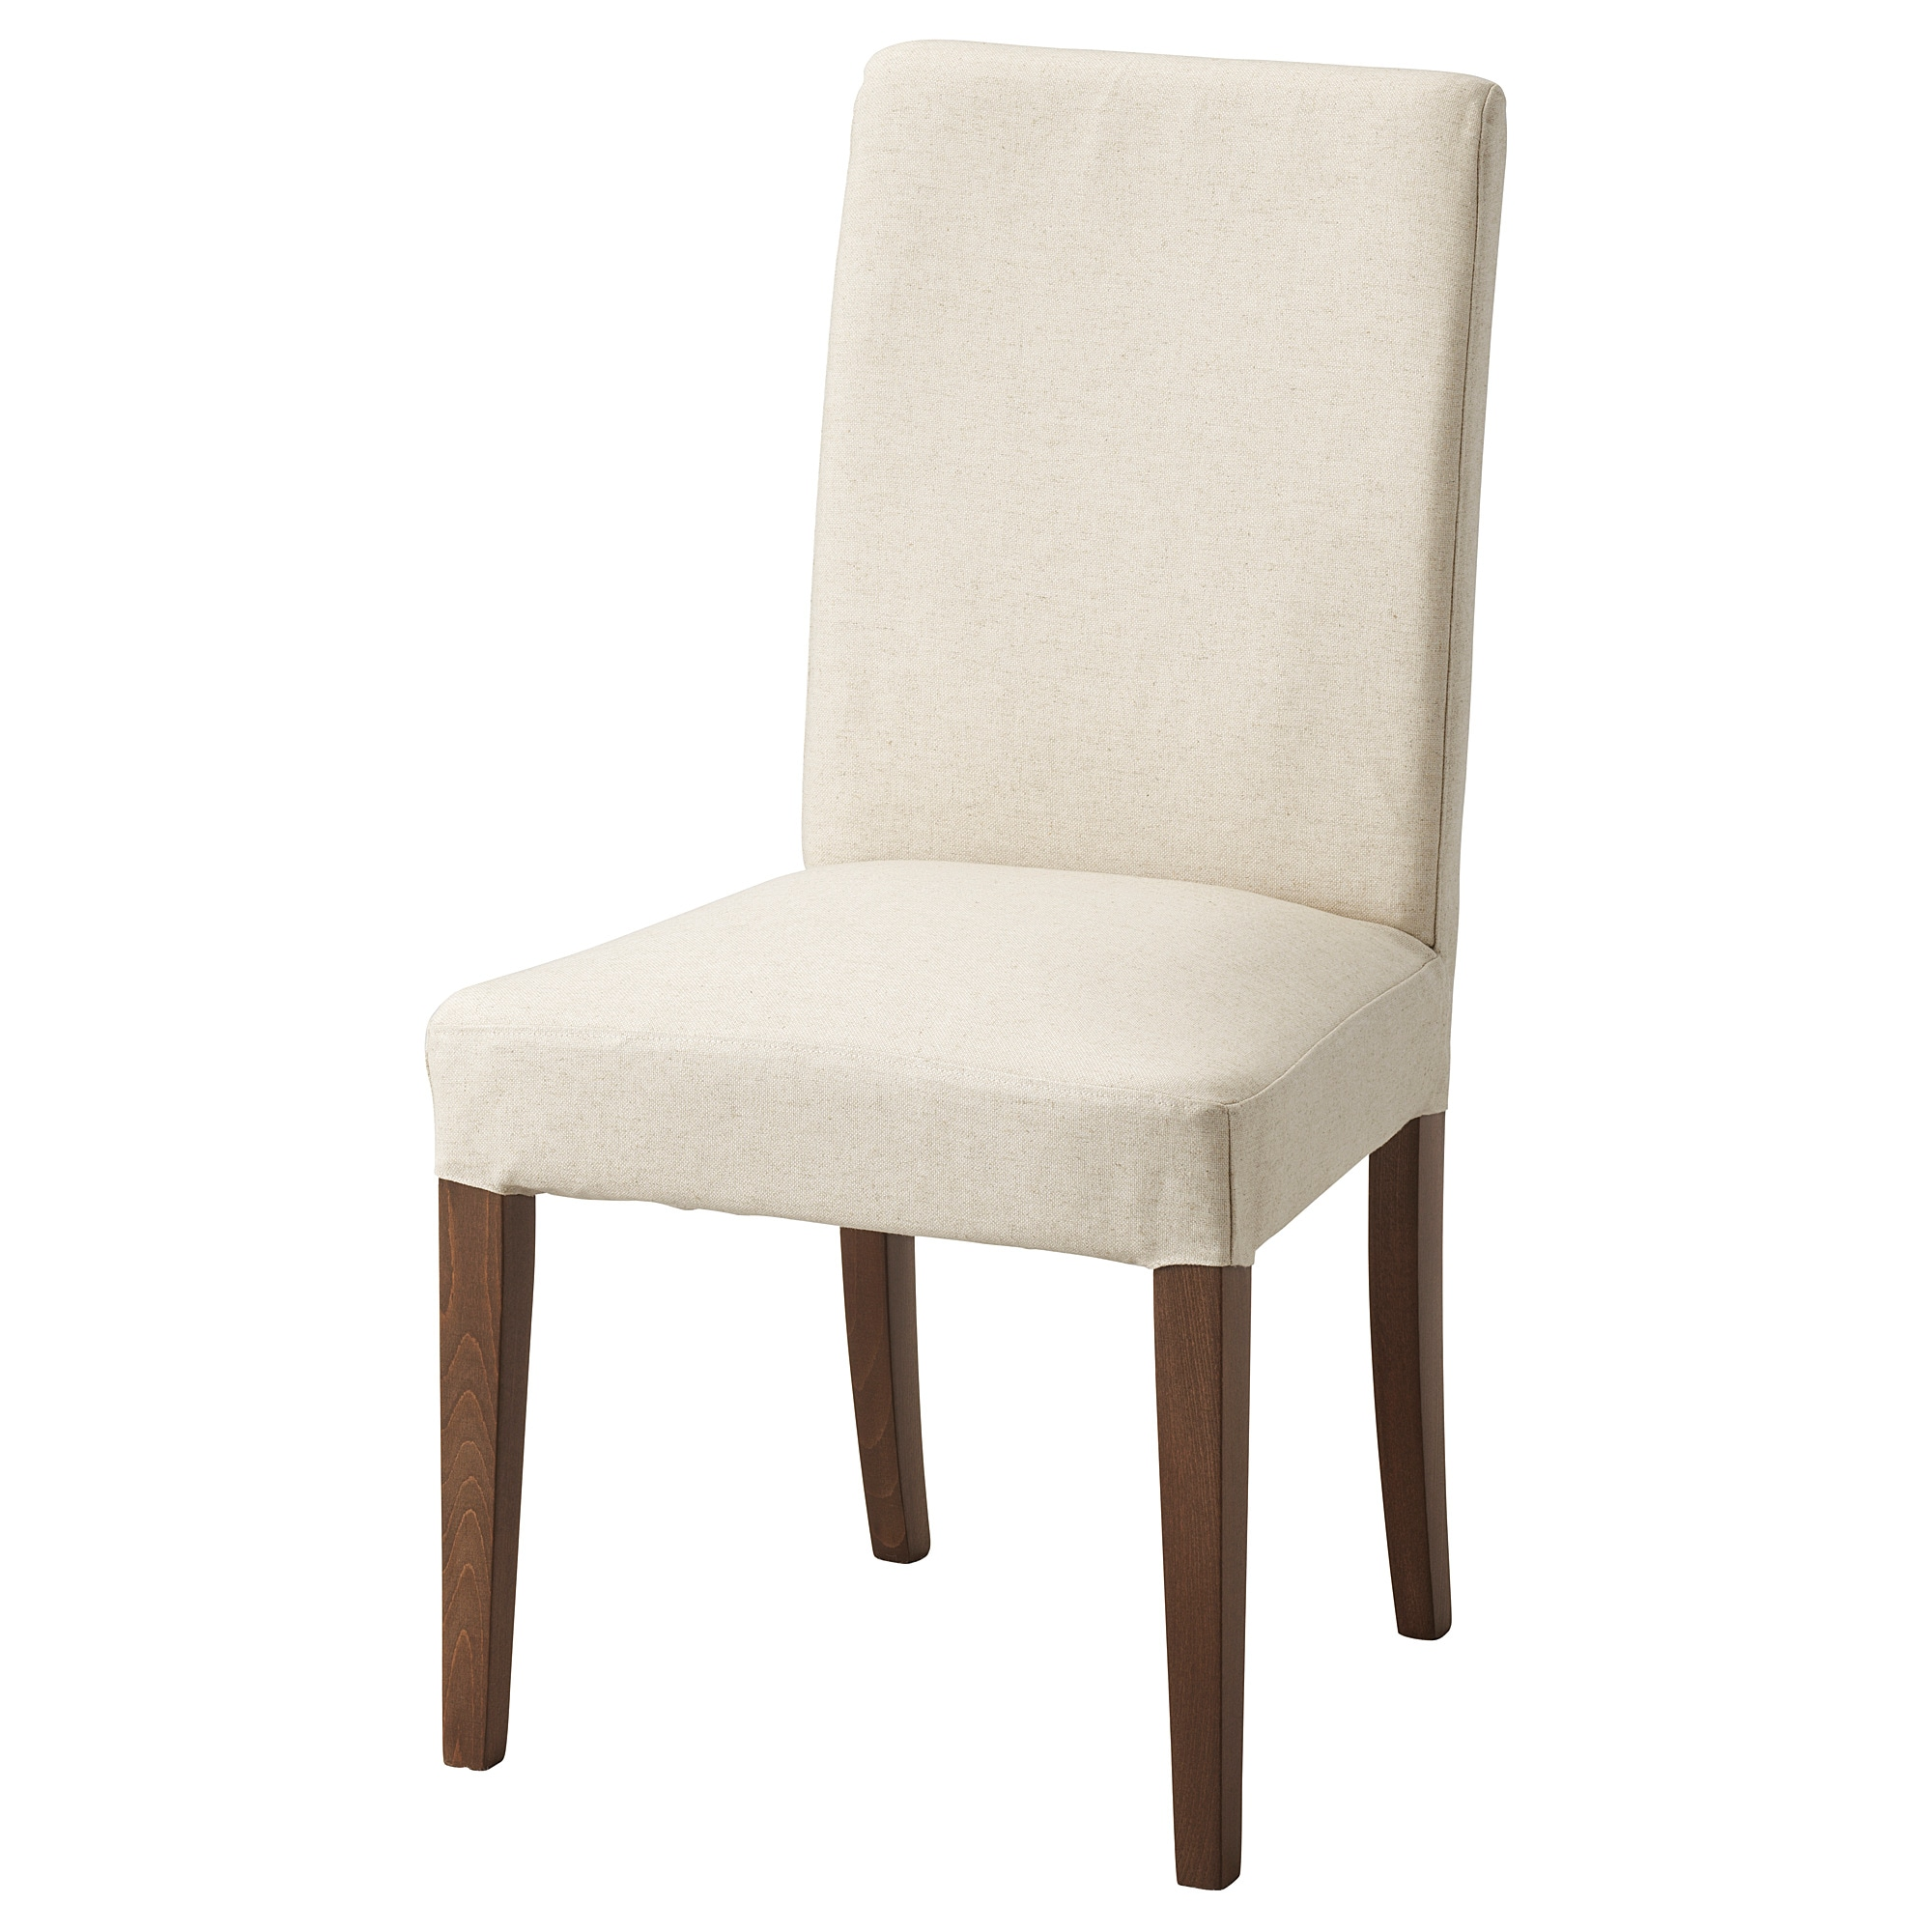 Upholstered Dining Chairs IKEA